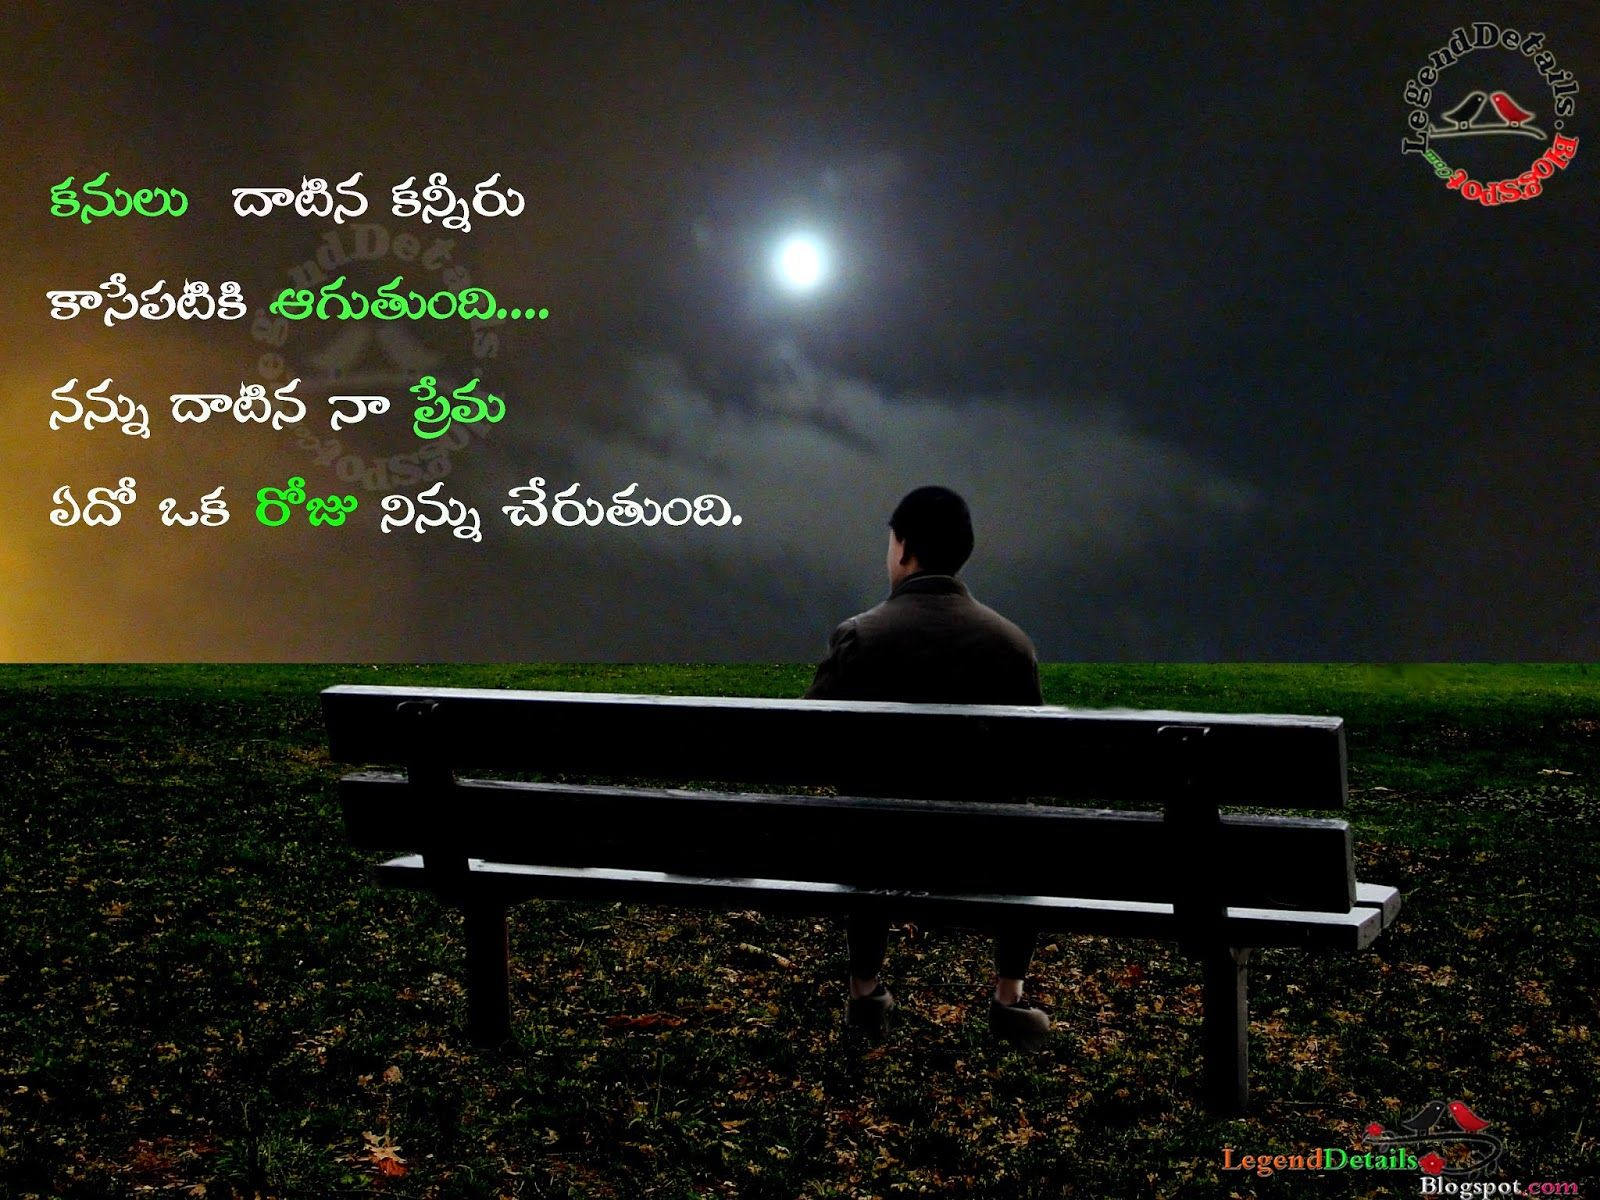 Here is New Telugu Heart Breaking Love Quotes New Heart Touching Telugu Love Quotes